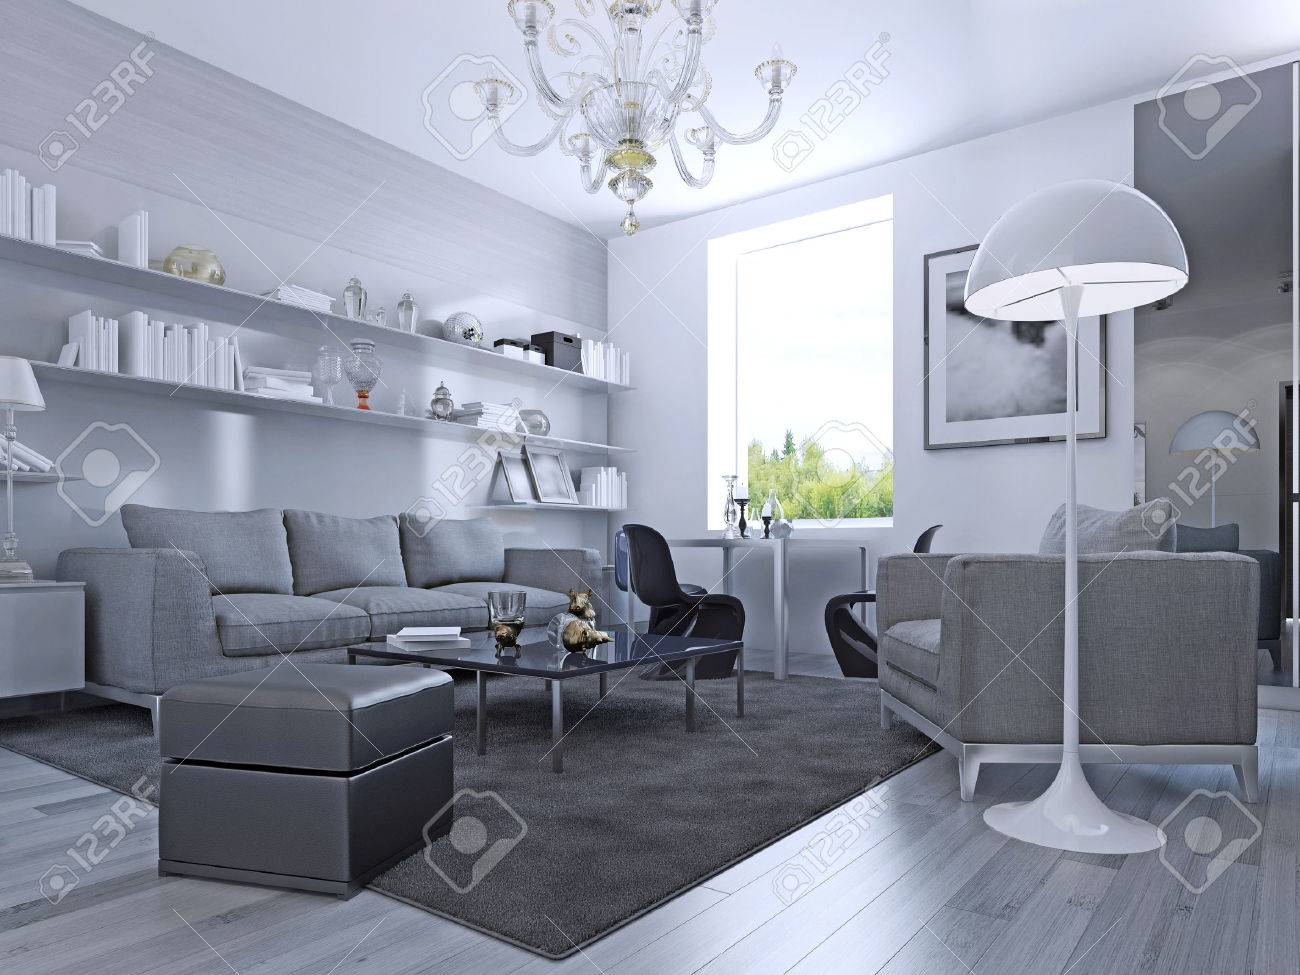 Living Room In Modern Style Elegant With White Walls And Light Grey Laminate